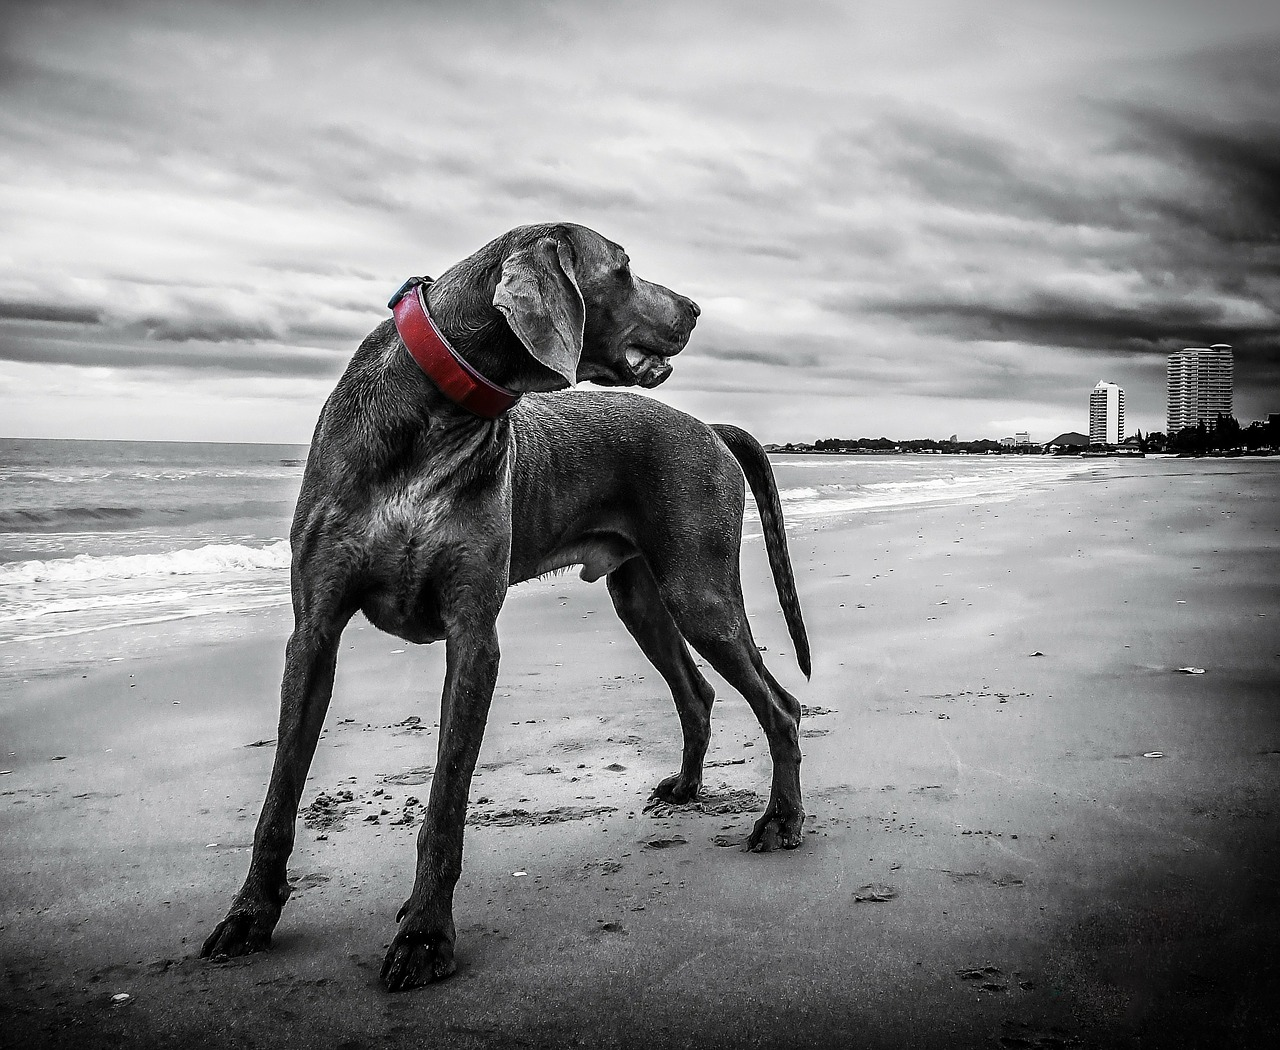 Weimaraner: Dog Breed Information, Facts and Pictures